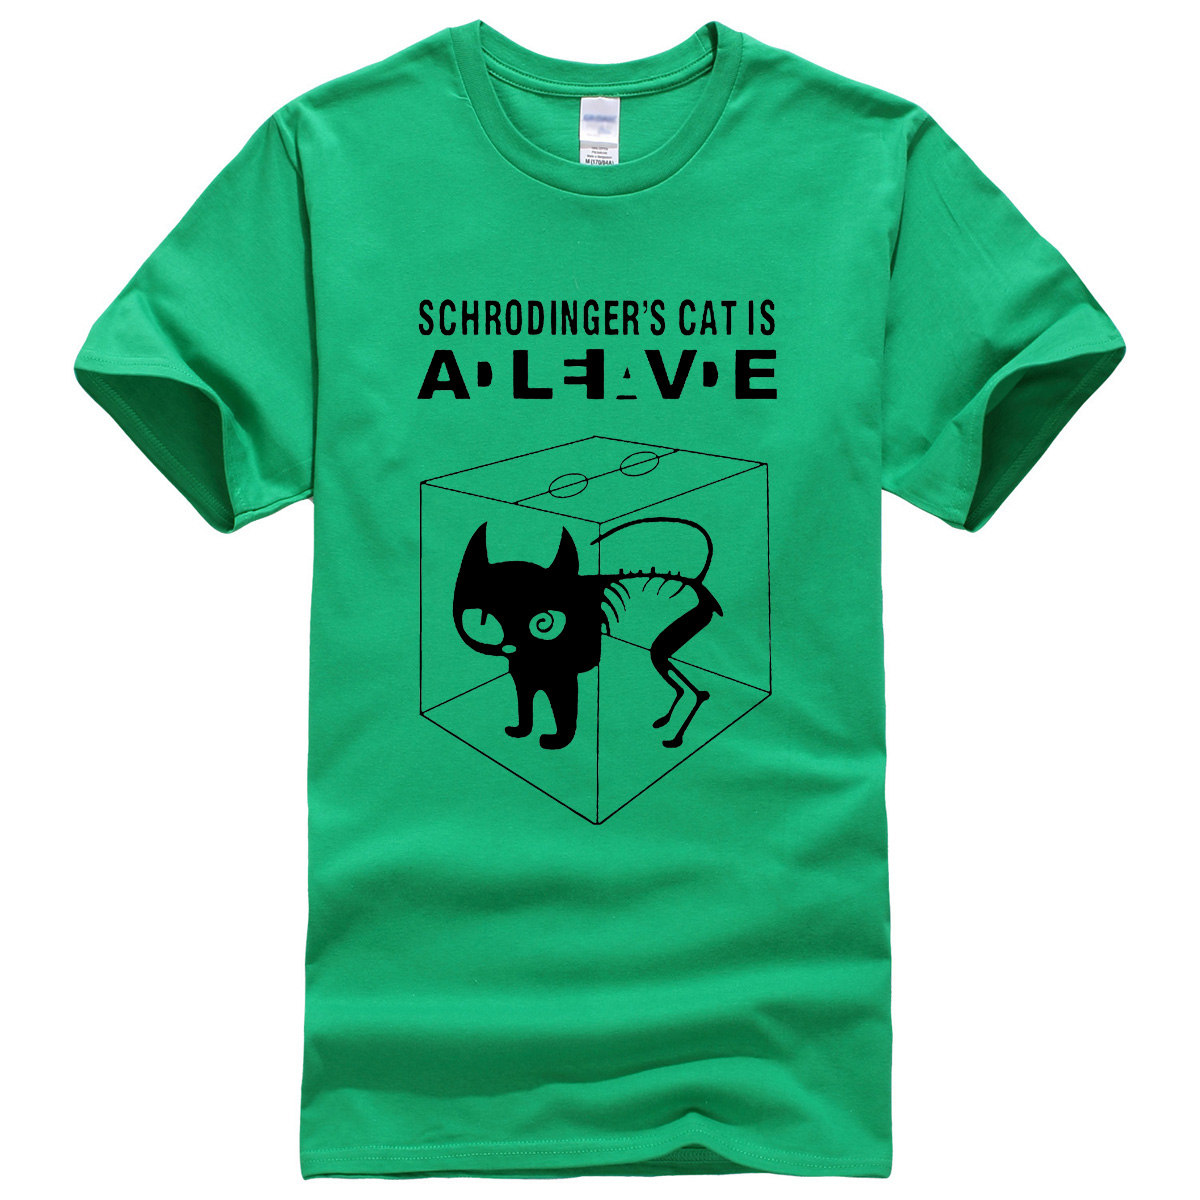 The Big Bang Theory Schrodingers Cat mens T-shirts pattern 2018 summer fashion casual t shirt streetwear hip hop brand top tee